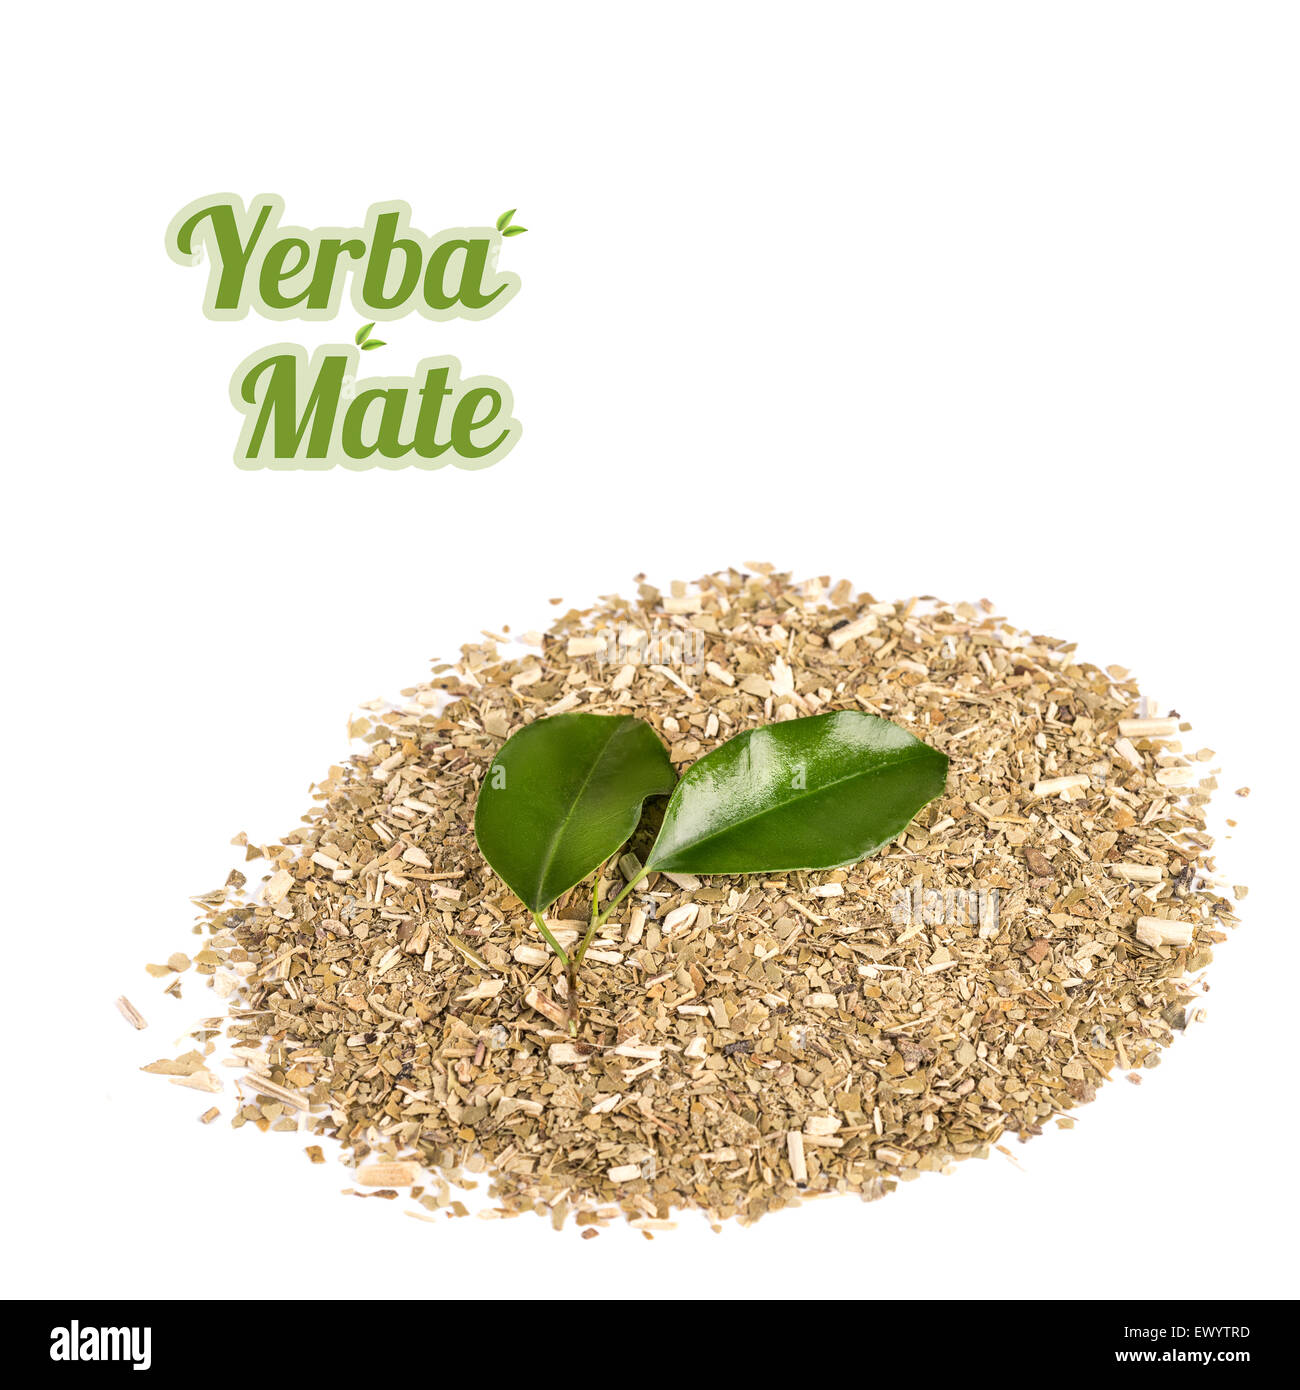 Yerba Mate, dry mixture of crushed leaves and stems of the plant on white background - Stock Image